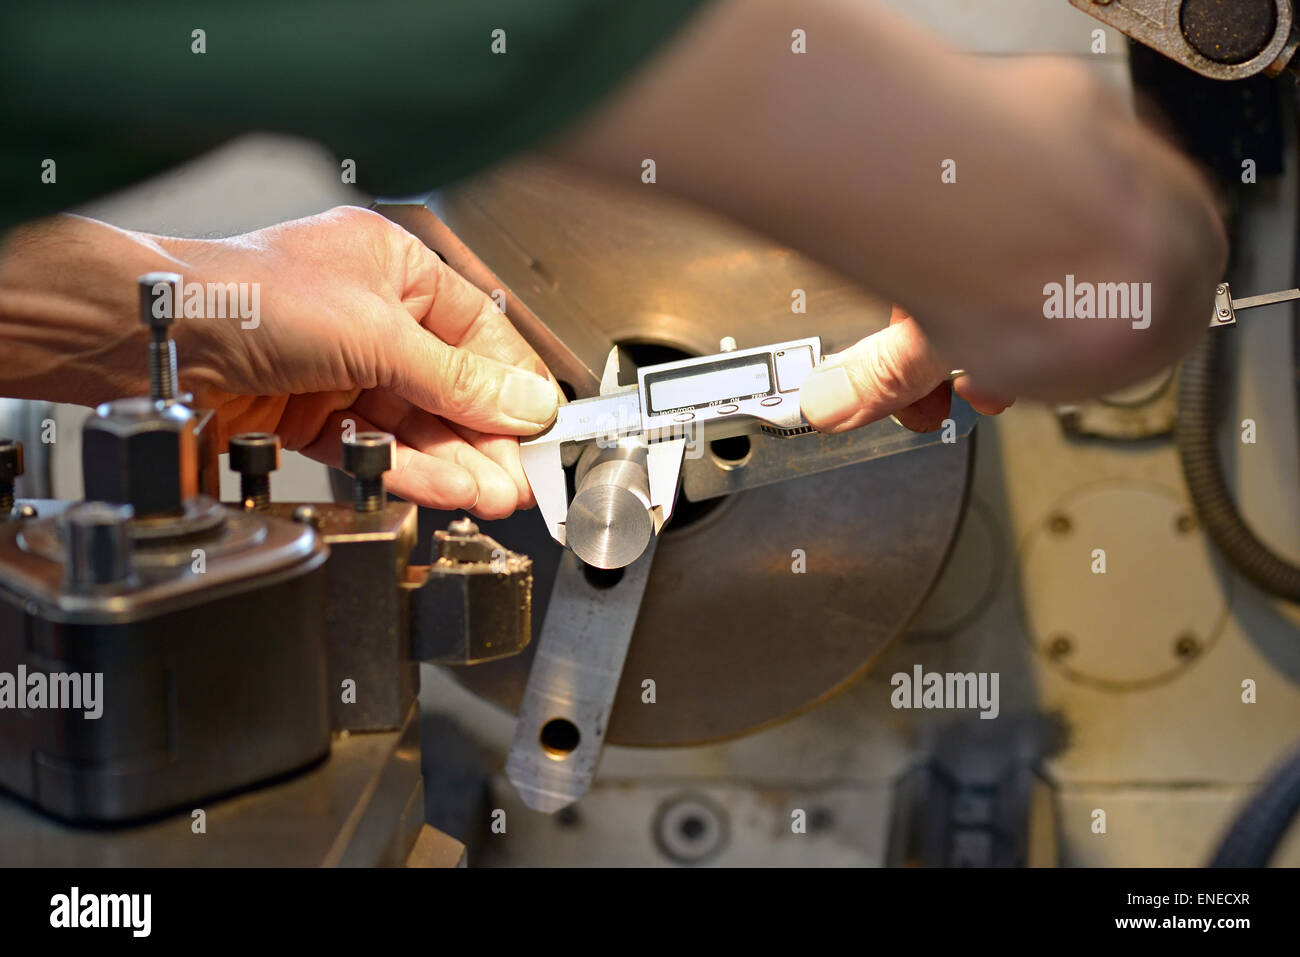 Hands of a male mechanical engineer while measuring a metallic piece with an accurate caliper, at workbench Stock Photo